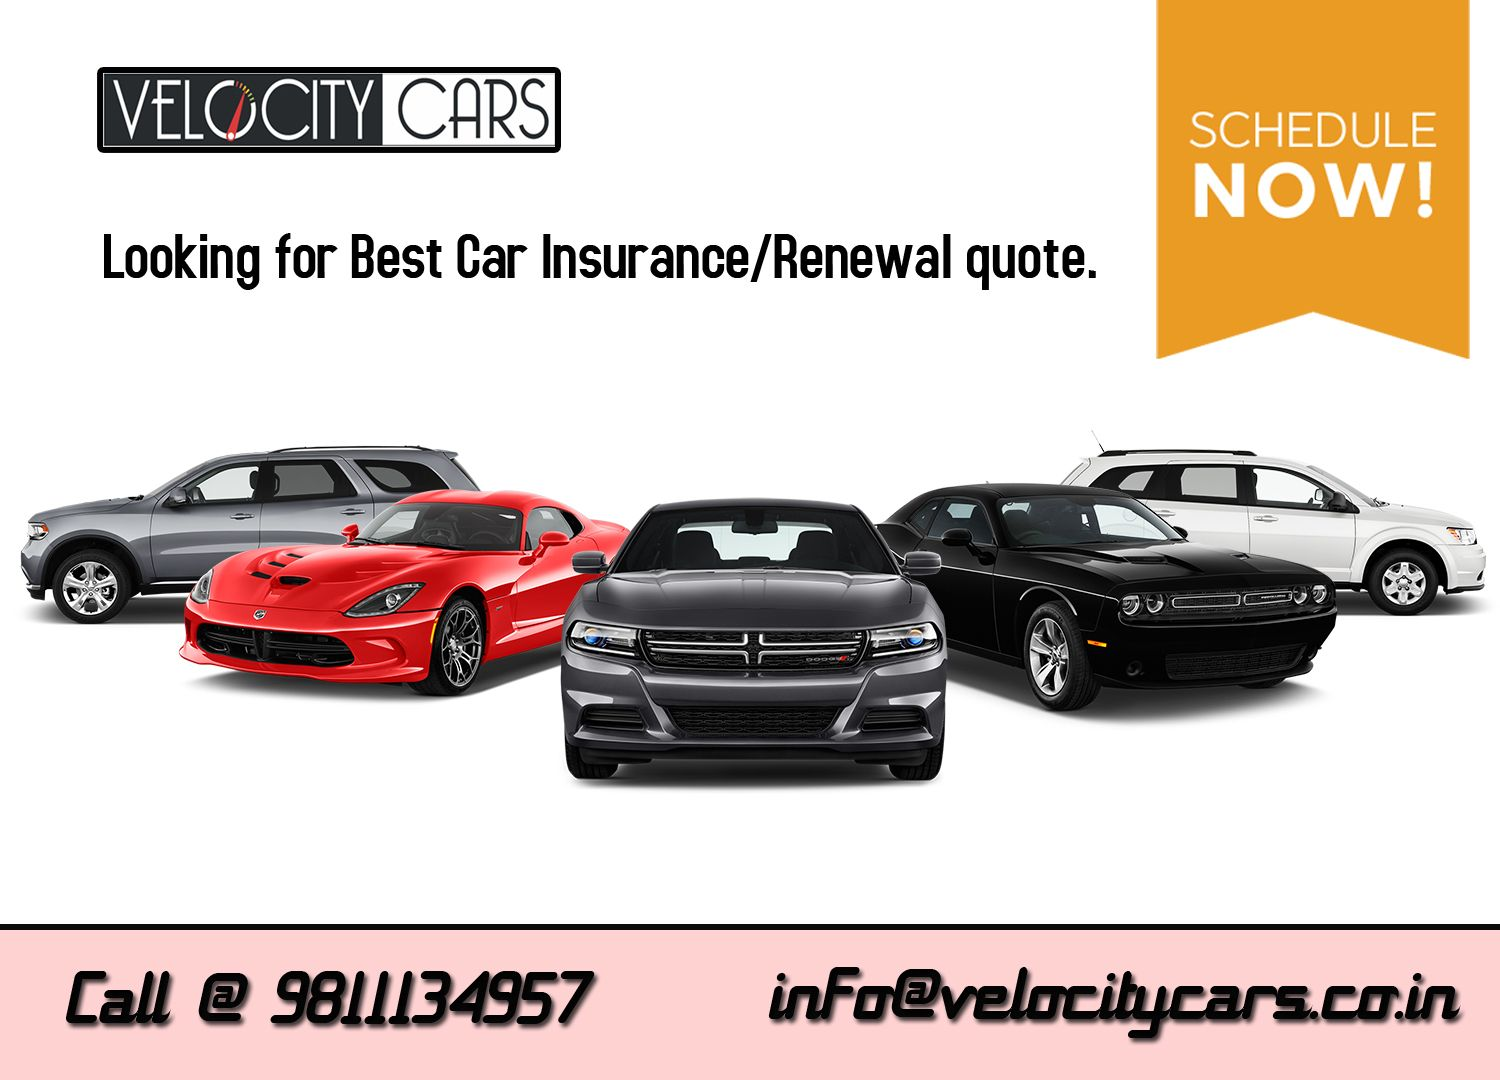 Looking for Best Car Insurance/Renewal quote. Feel Free to